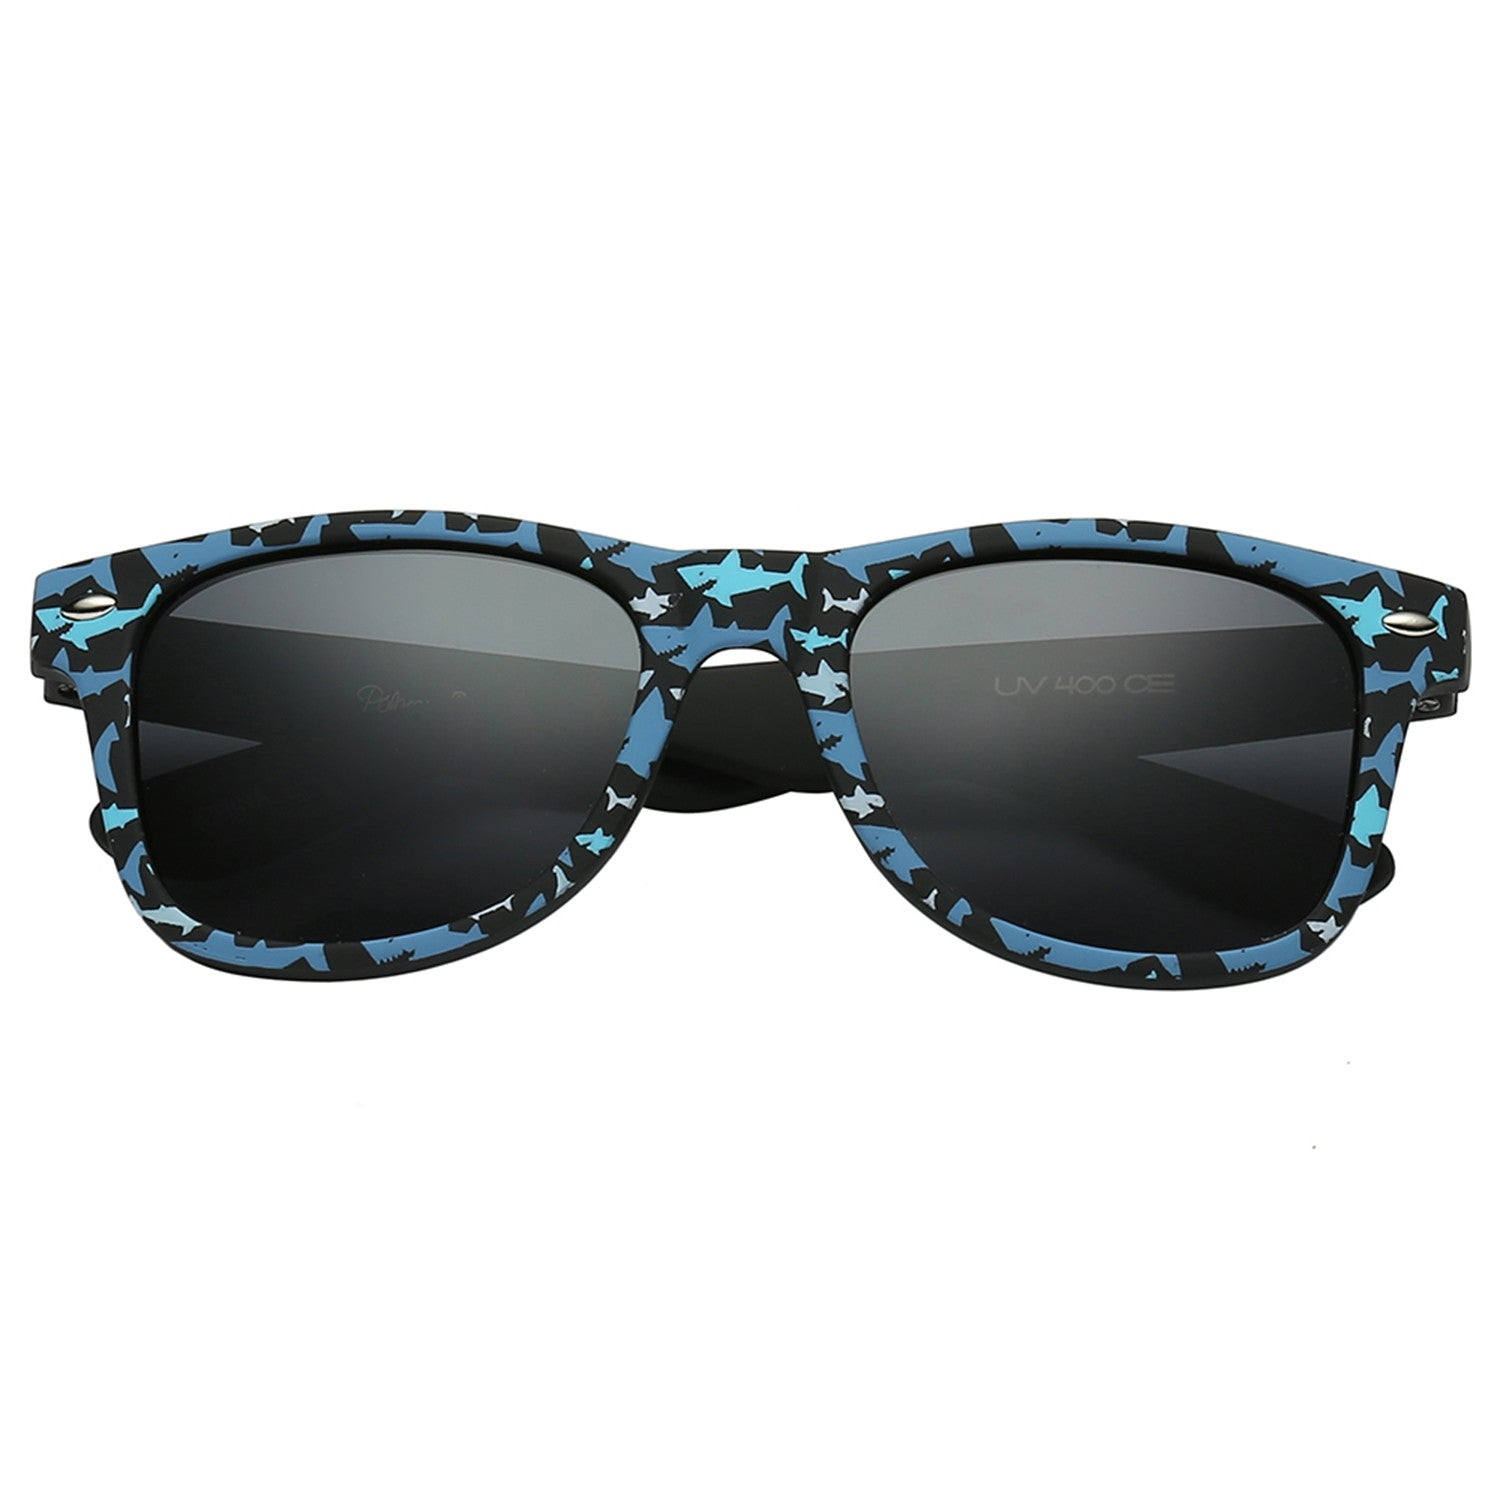 Polarspex Polarized 80's Retro Style Kids Sunglasses with Rubberized Megalodon Shark Frames and Polarized Smoke Lenses for Boys and Girls